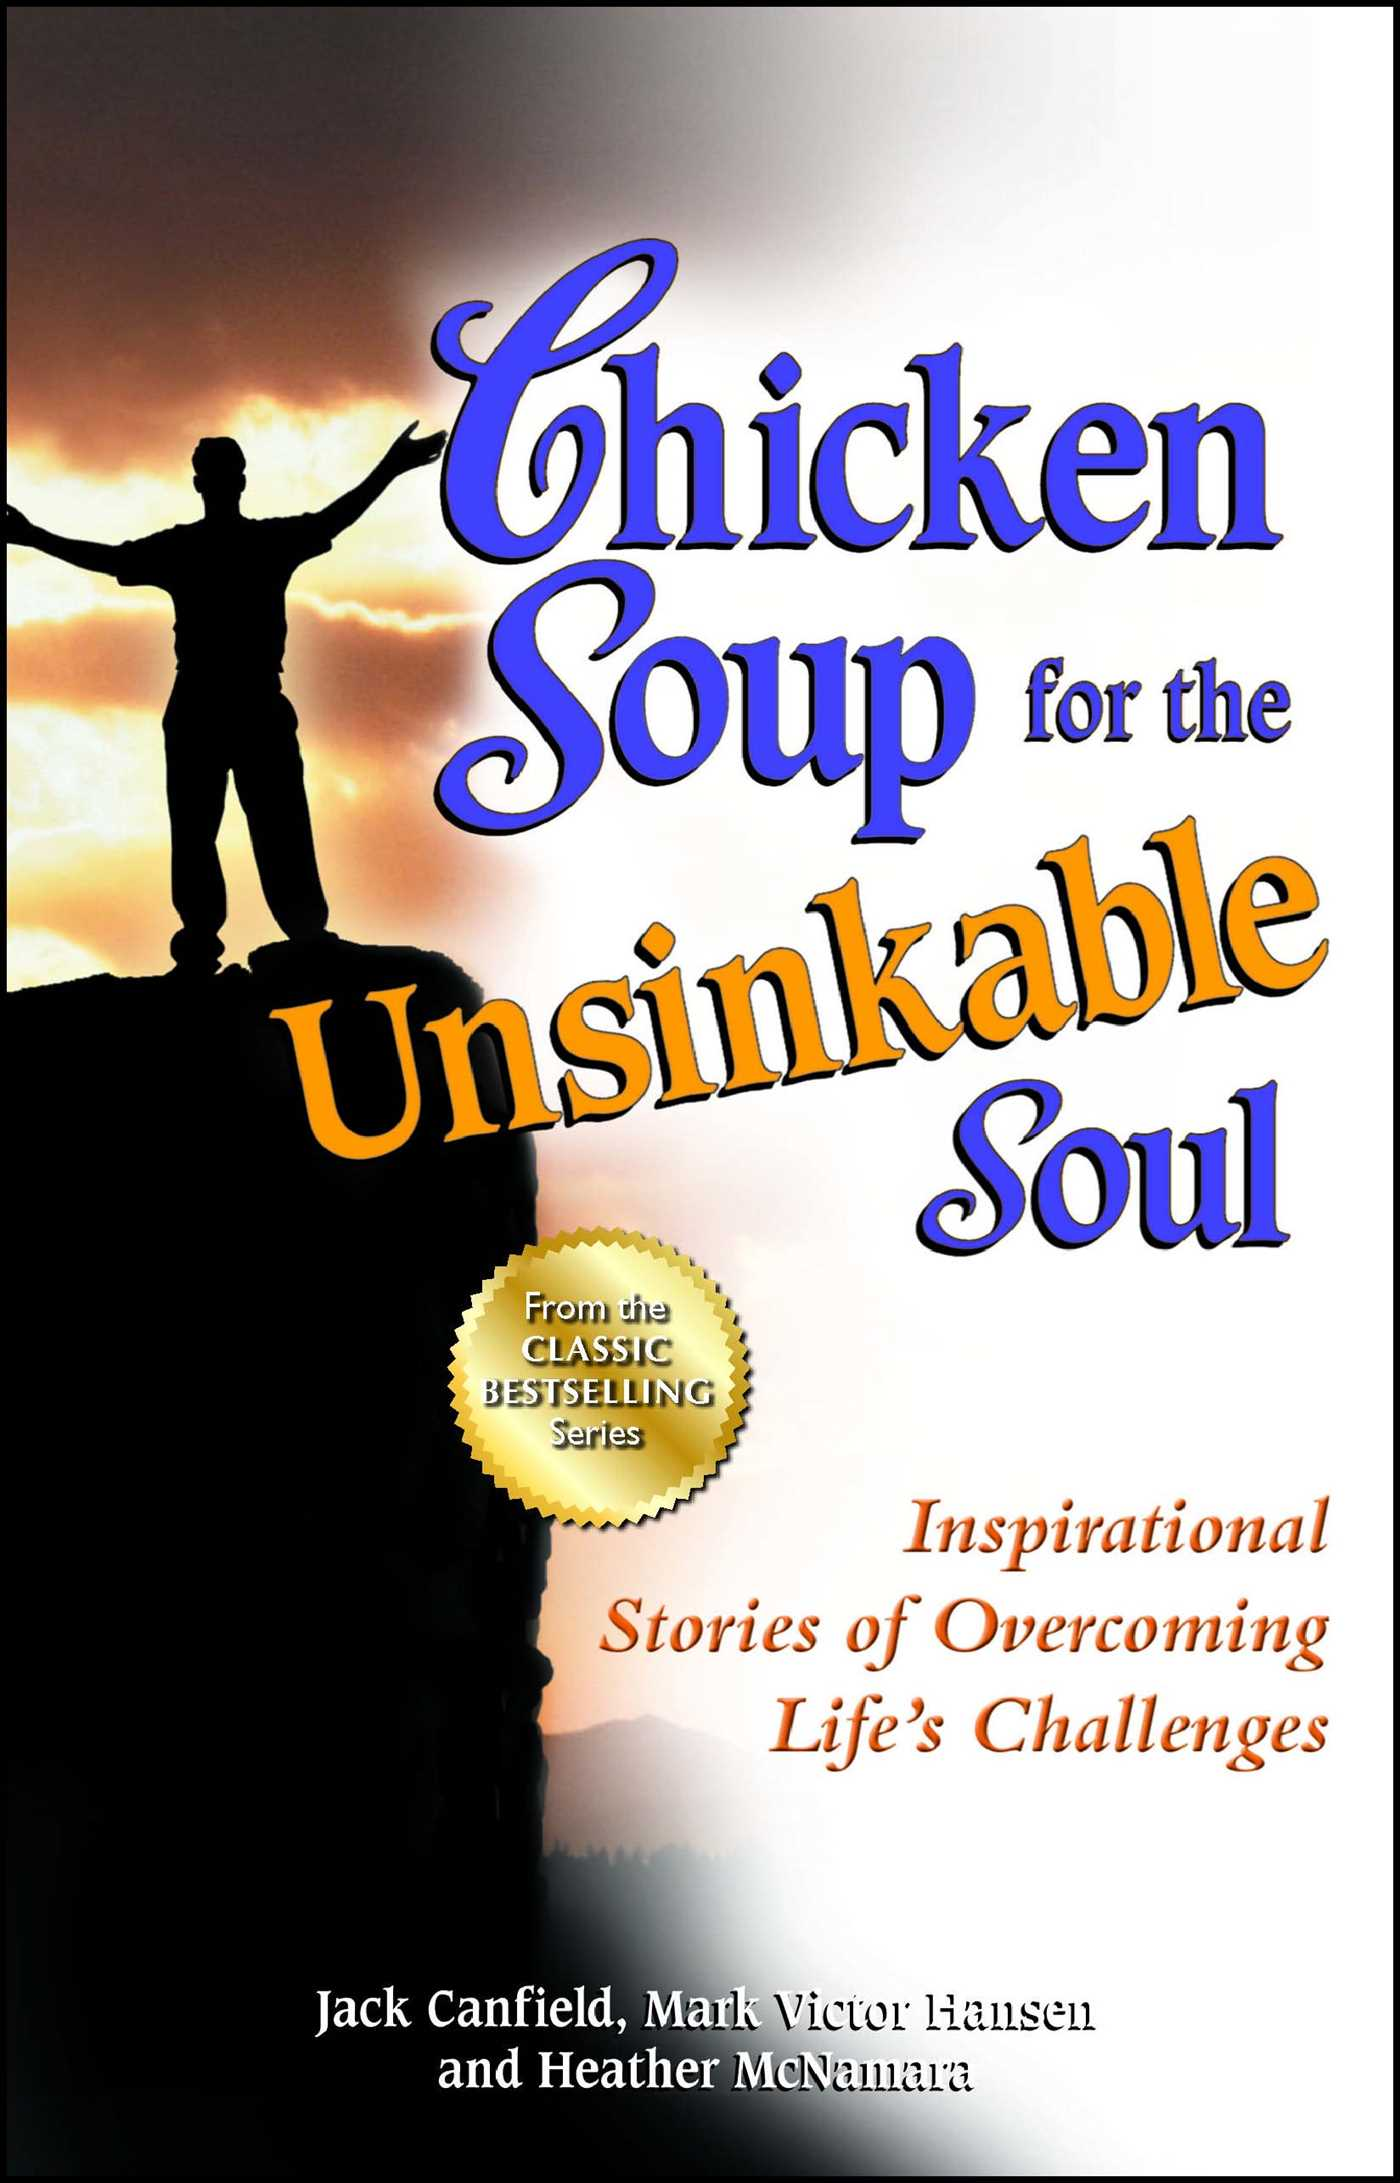 Chicken soup for the unsinkable soul 9781623610838 hr